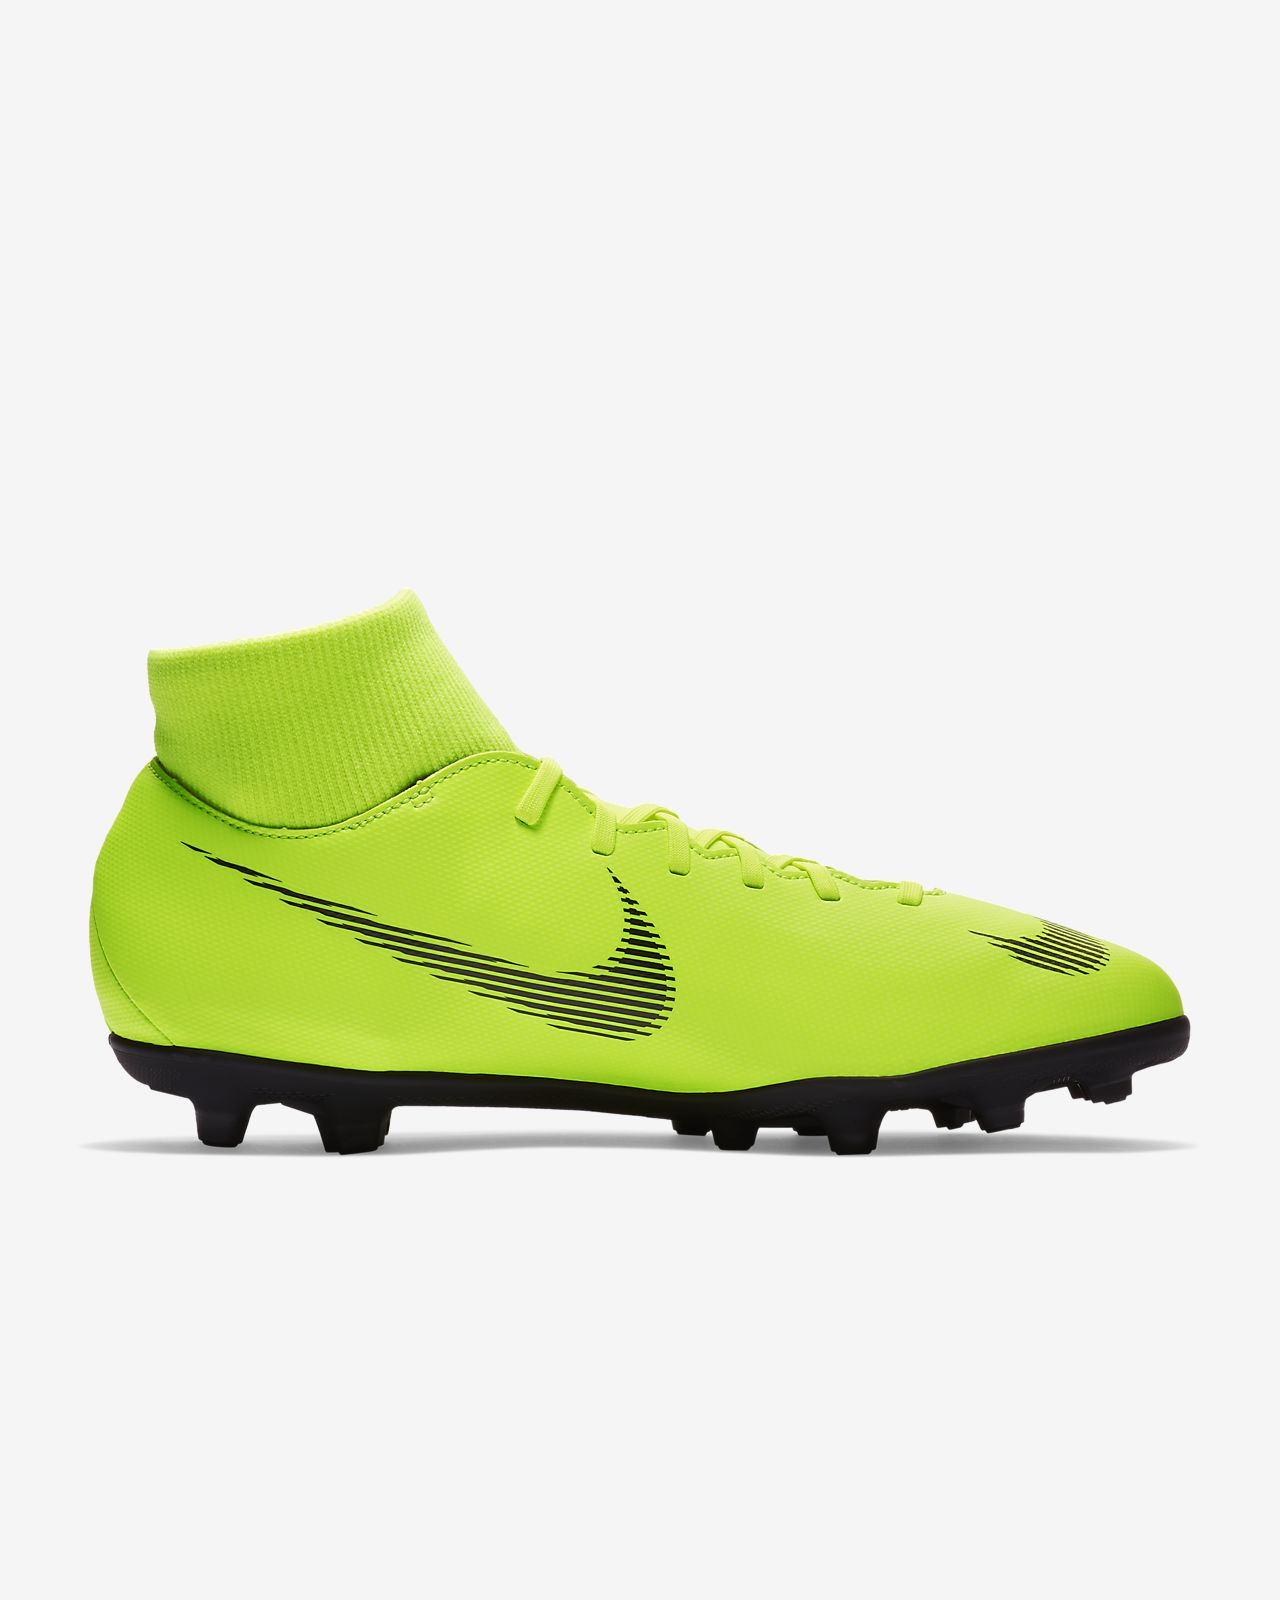 the best attitude e22ca c6fa6 ... Chaussure de football multi-terrains à crampons Nike Mercurial Superfly  VI Club